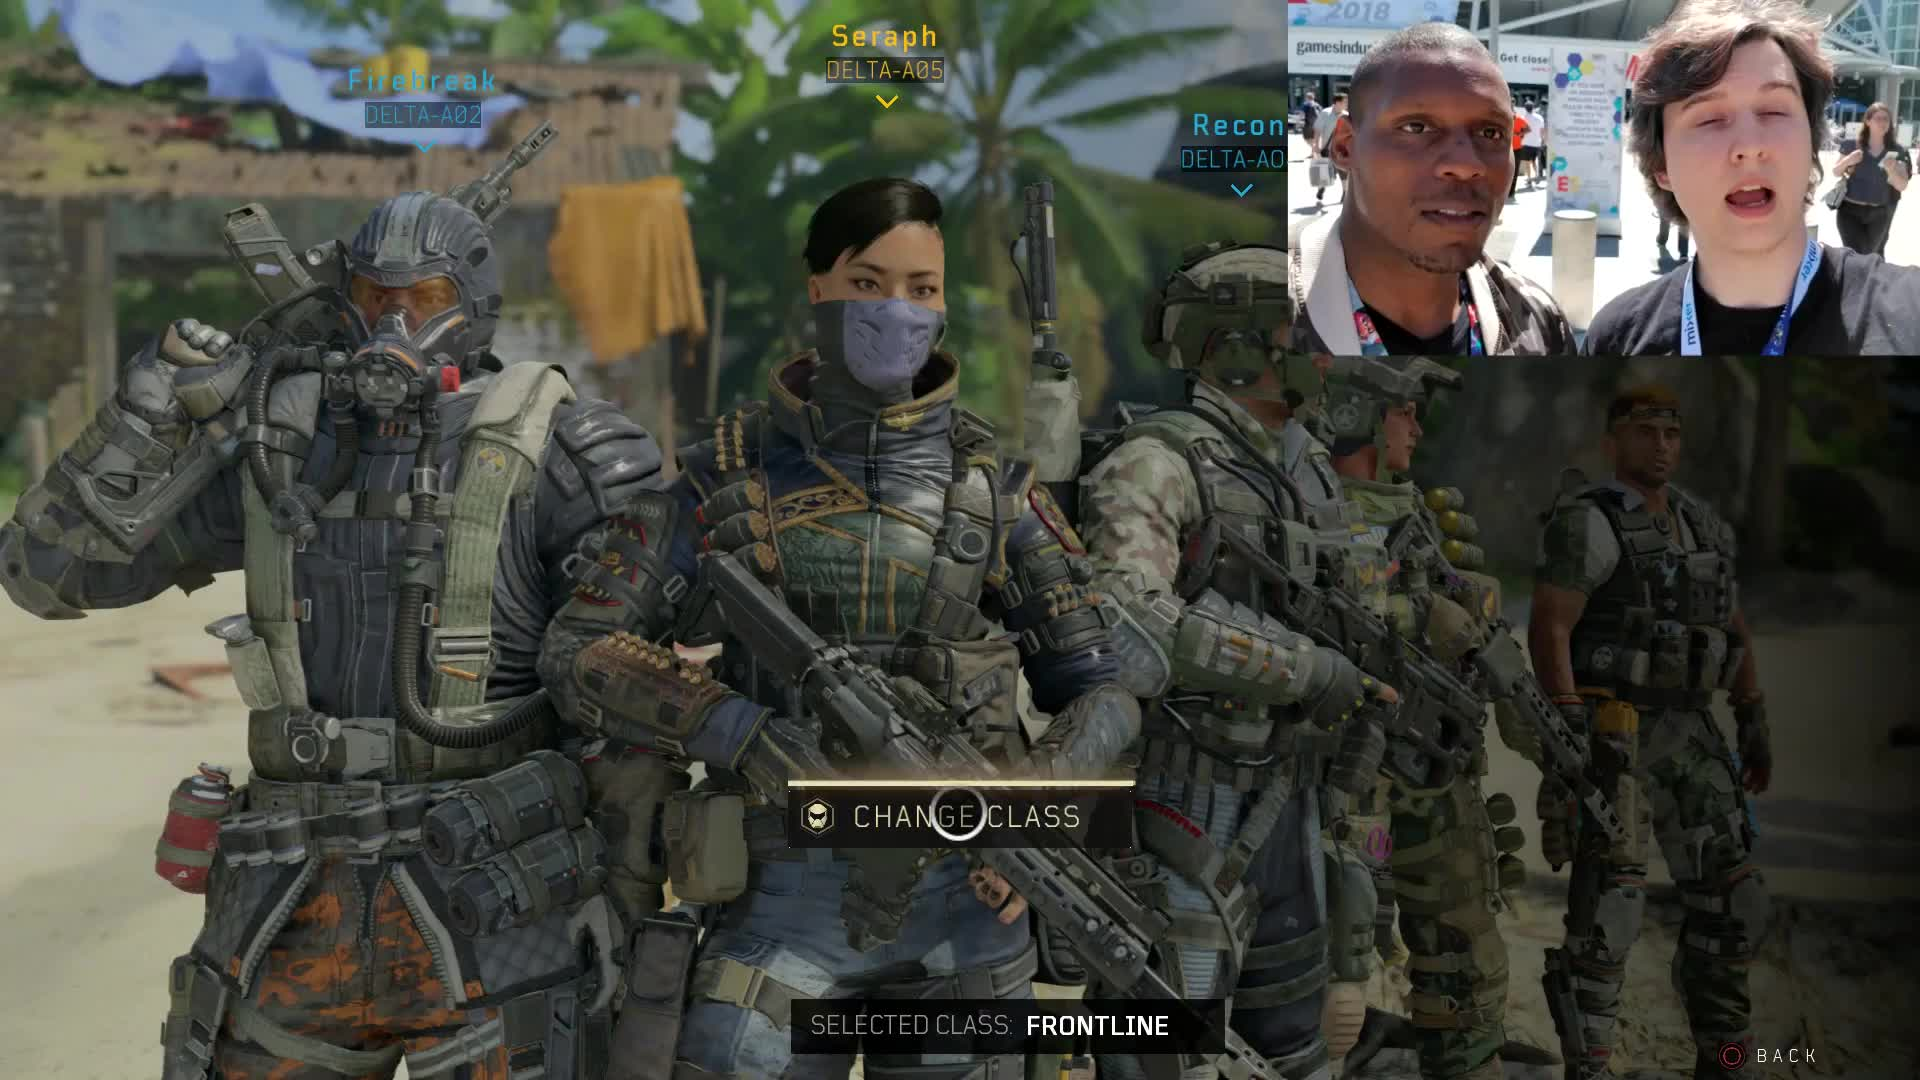 BO4, Battle Royale, Black Ops 4, Black Ops 4 Blackout, Black Ops 4 criticism, Black Ops 4 review, Blackout, Blops 4, Call of Duty: BO4, Call of Duty: Black Ops 4, Call of Duty: Black Ops 4 gameplay, CoD BO4, bad, drift0r, driftor, good, info, no campaign, specialists, ugly,